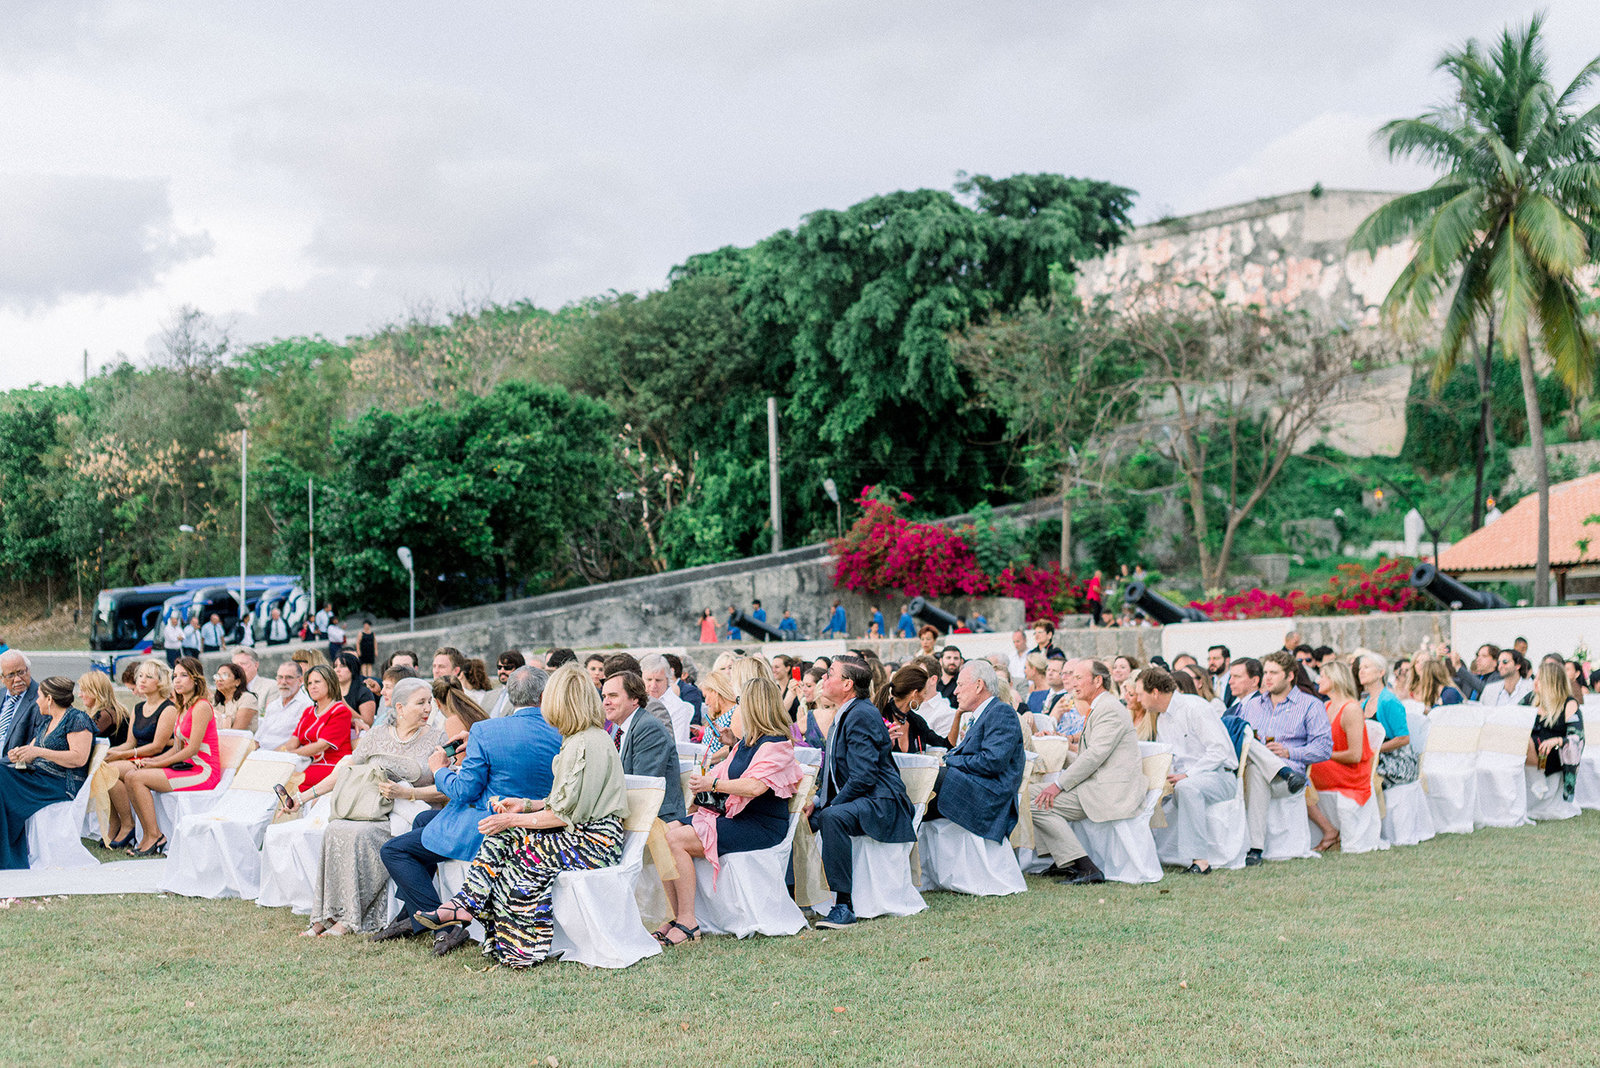 20150328-Pura-Soul-Photo-Cuba-Wedding-41